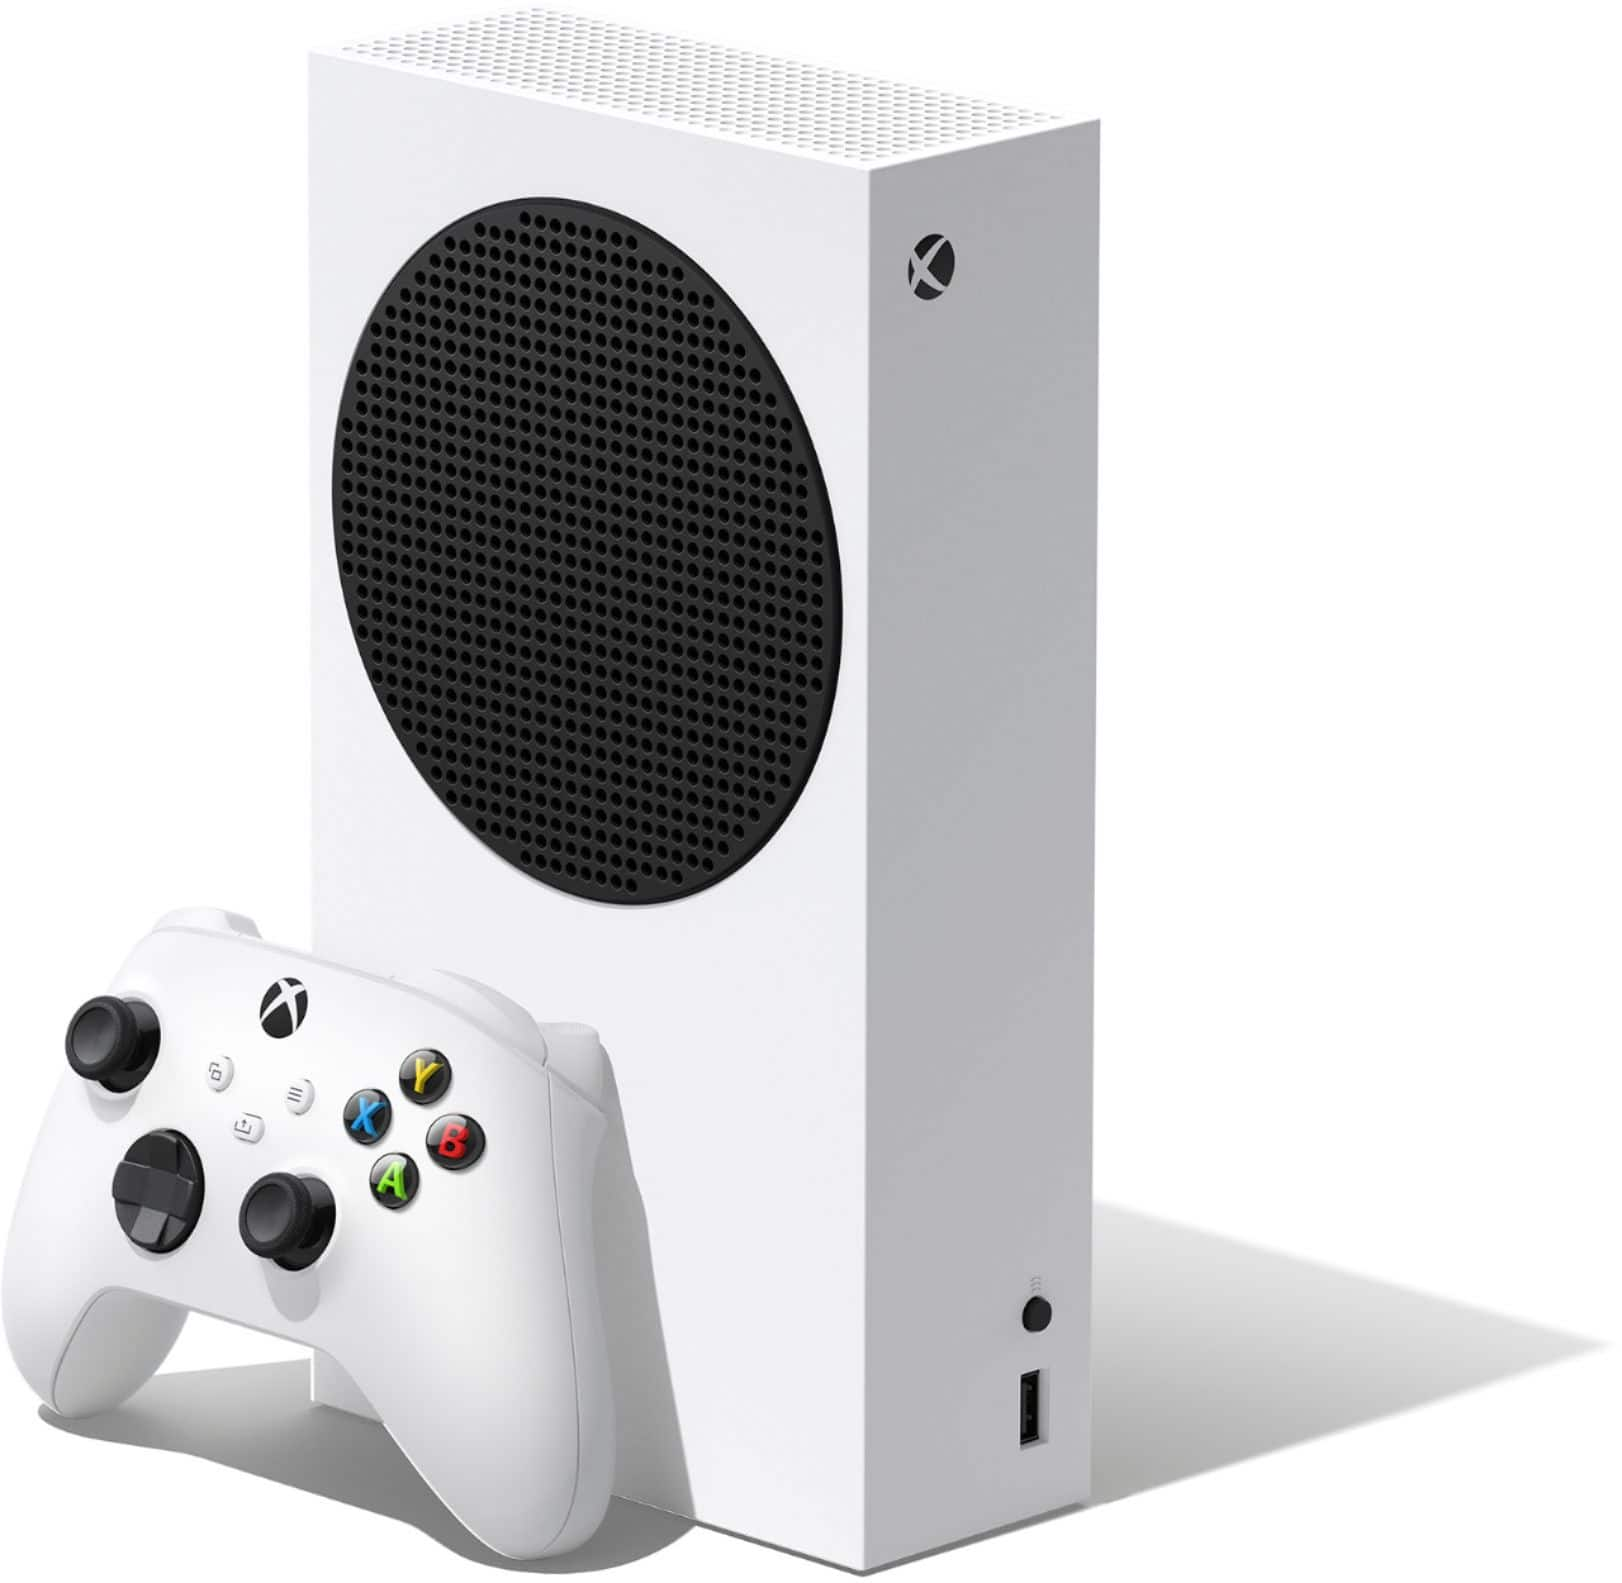 Microsoft Xbox Series S 512 GB All-Digital Console (Disc-free Gaming) White RRS-00001 - Best Buy $299.99